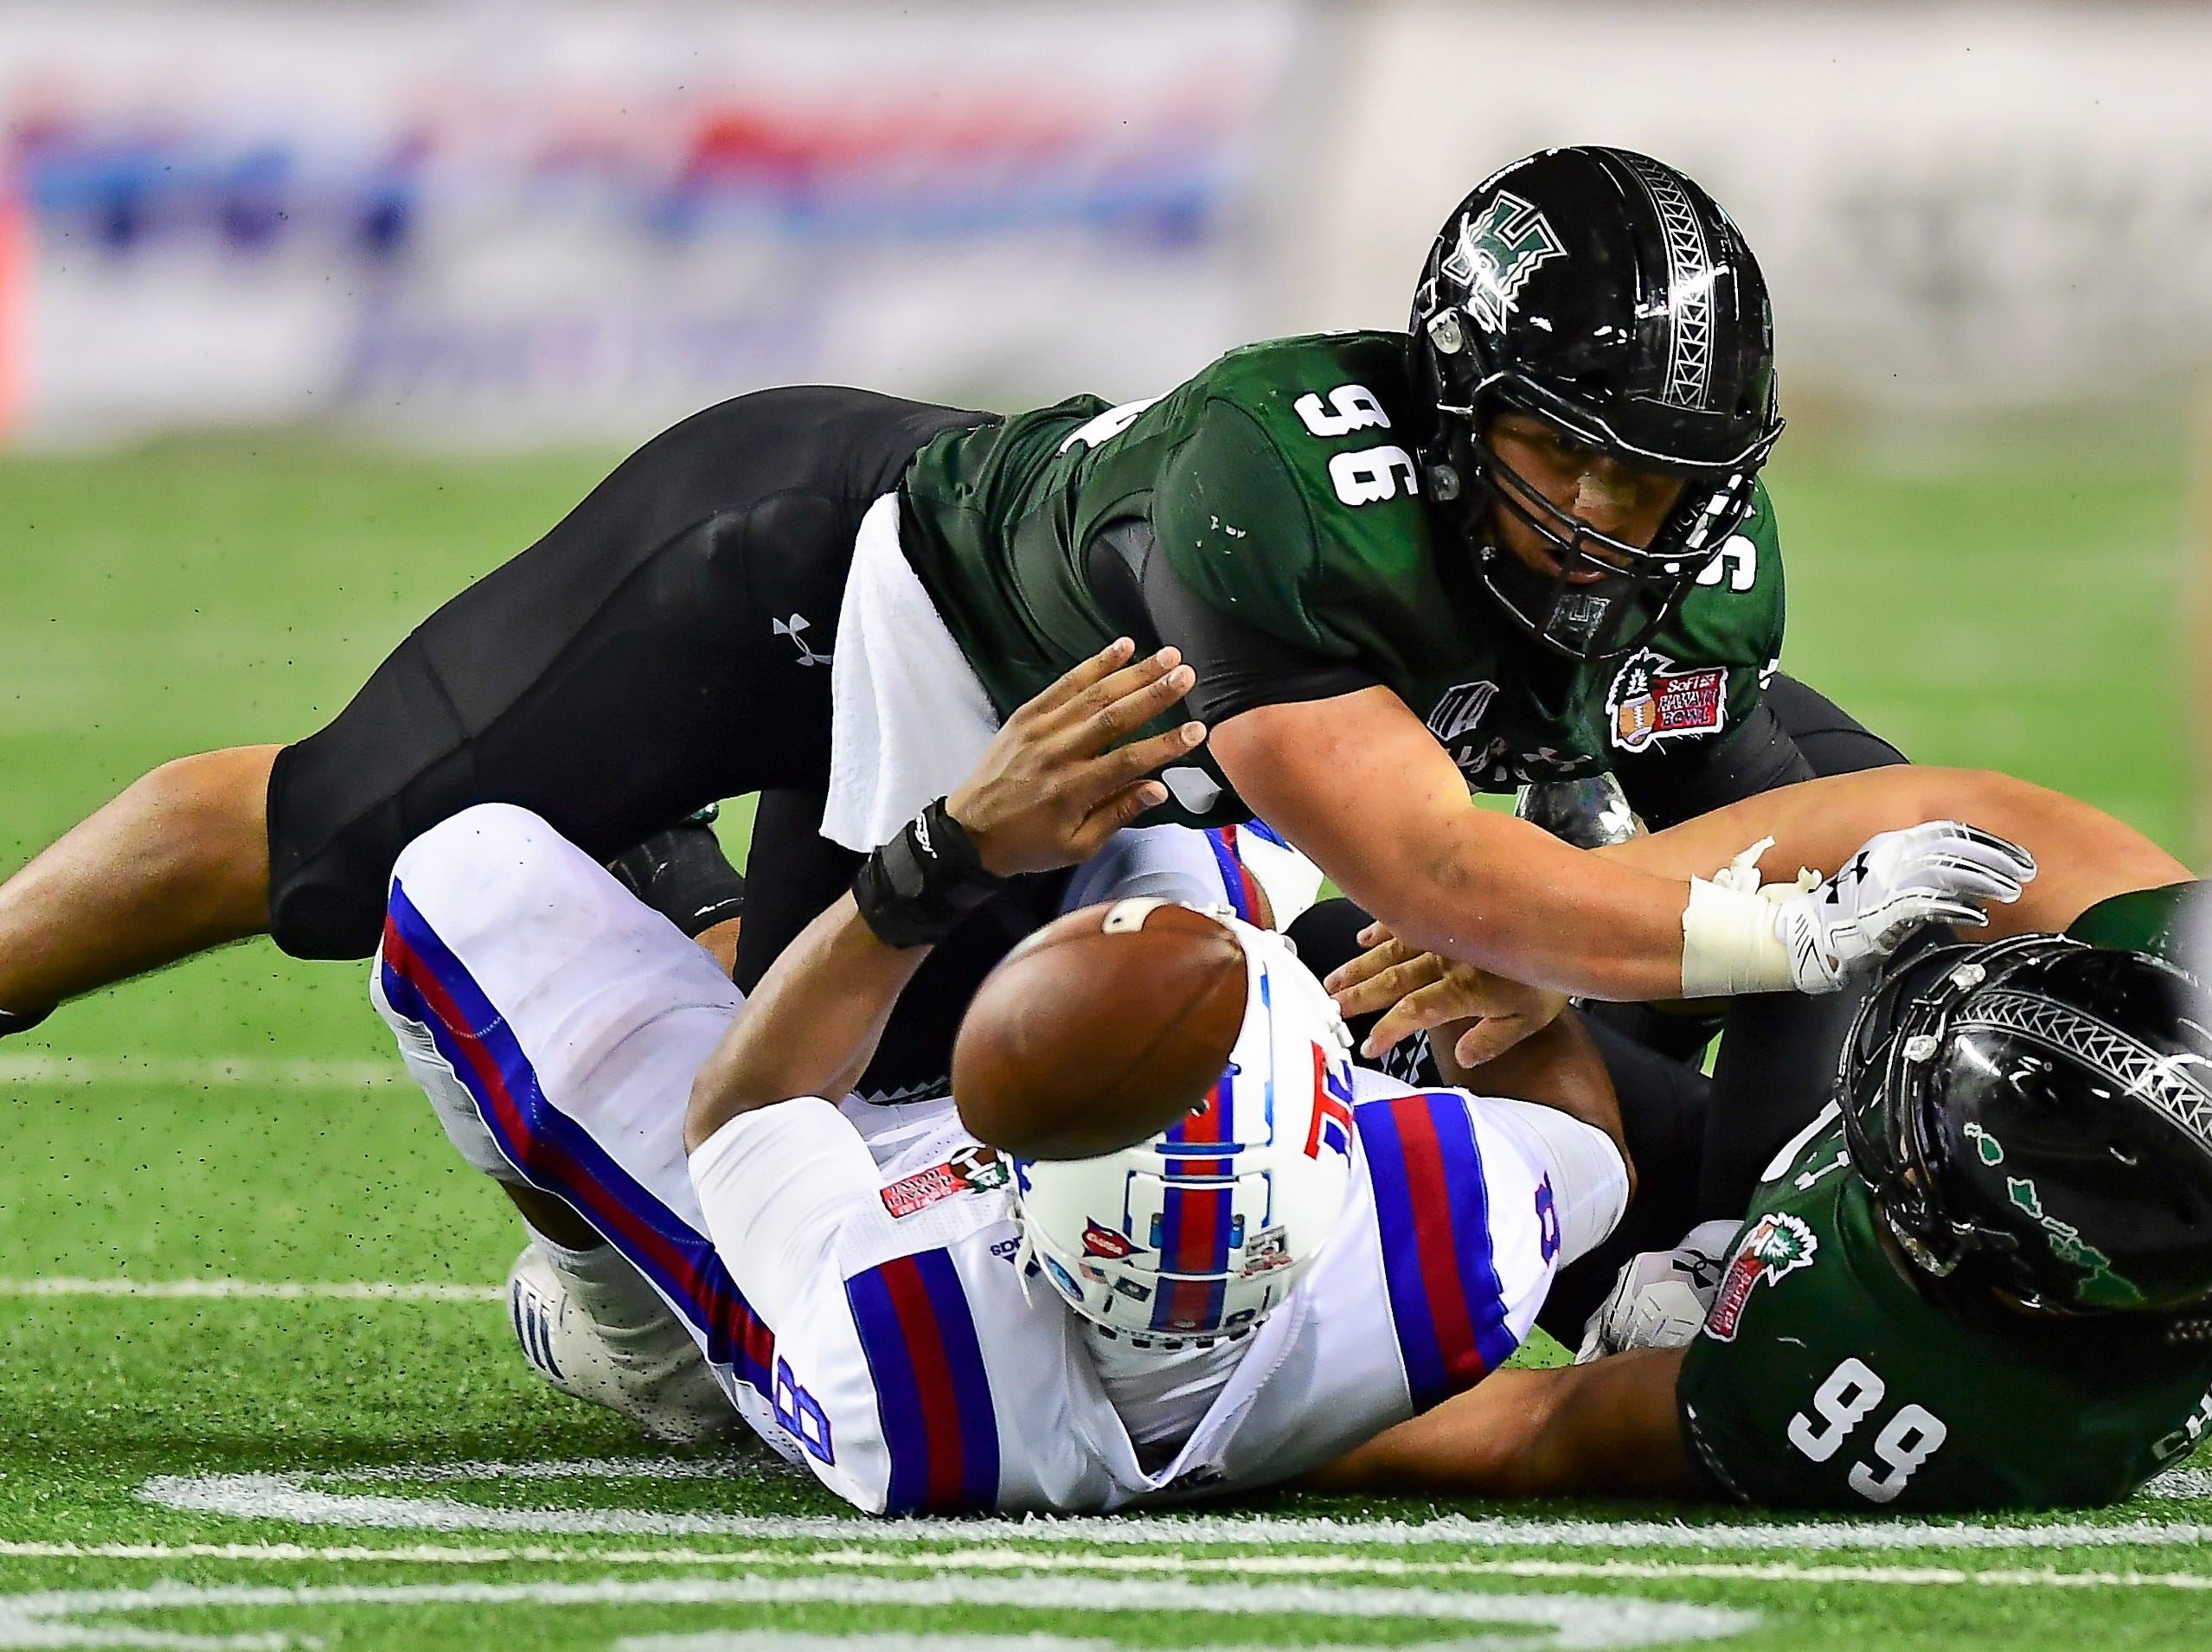 Hawaii Warriors defensive linemen Zeno Choi (99) and Kaimana Padello (96) force a fumble from Louisiana Tech Bulldogs quarterback J'Mar Smith (8) during the second quarter of the Hawaii Bowl.